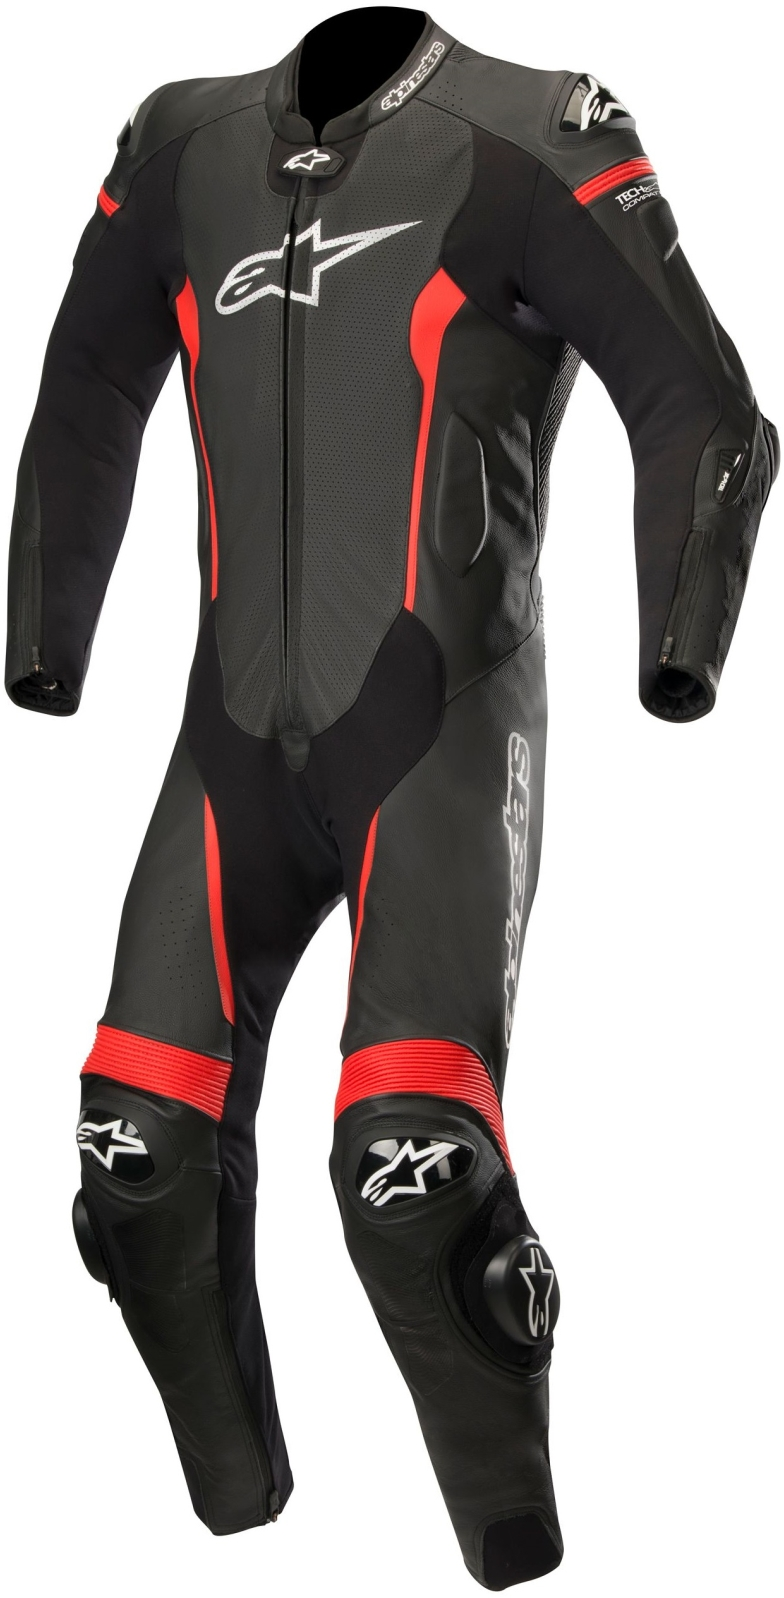 MISSILE LEATHER SUIT 1 PC - TECH AIR COMPATIBLE